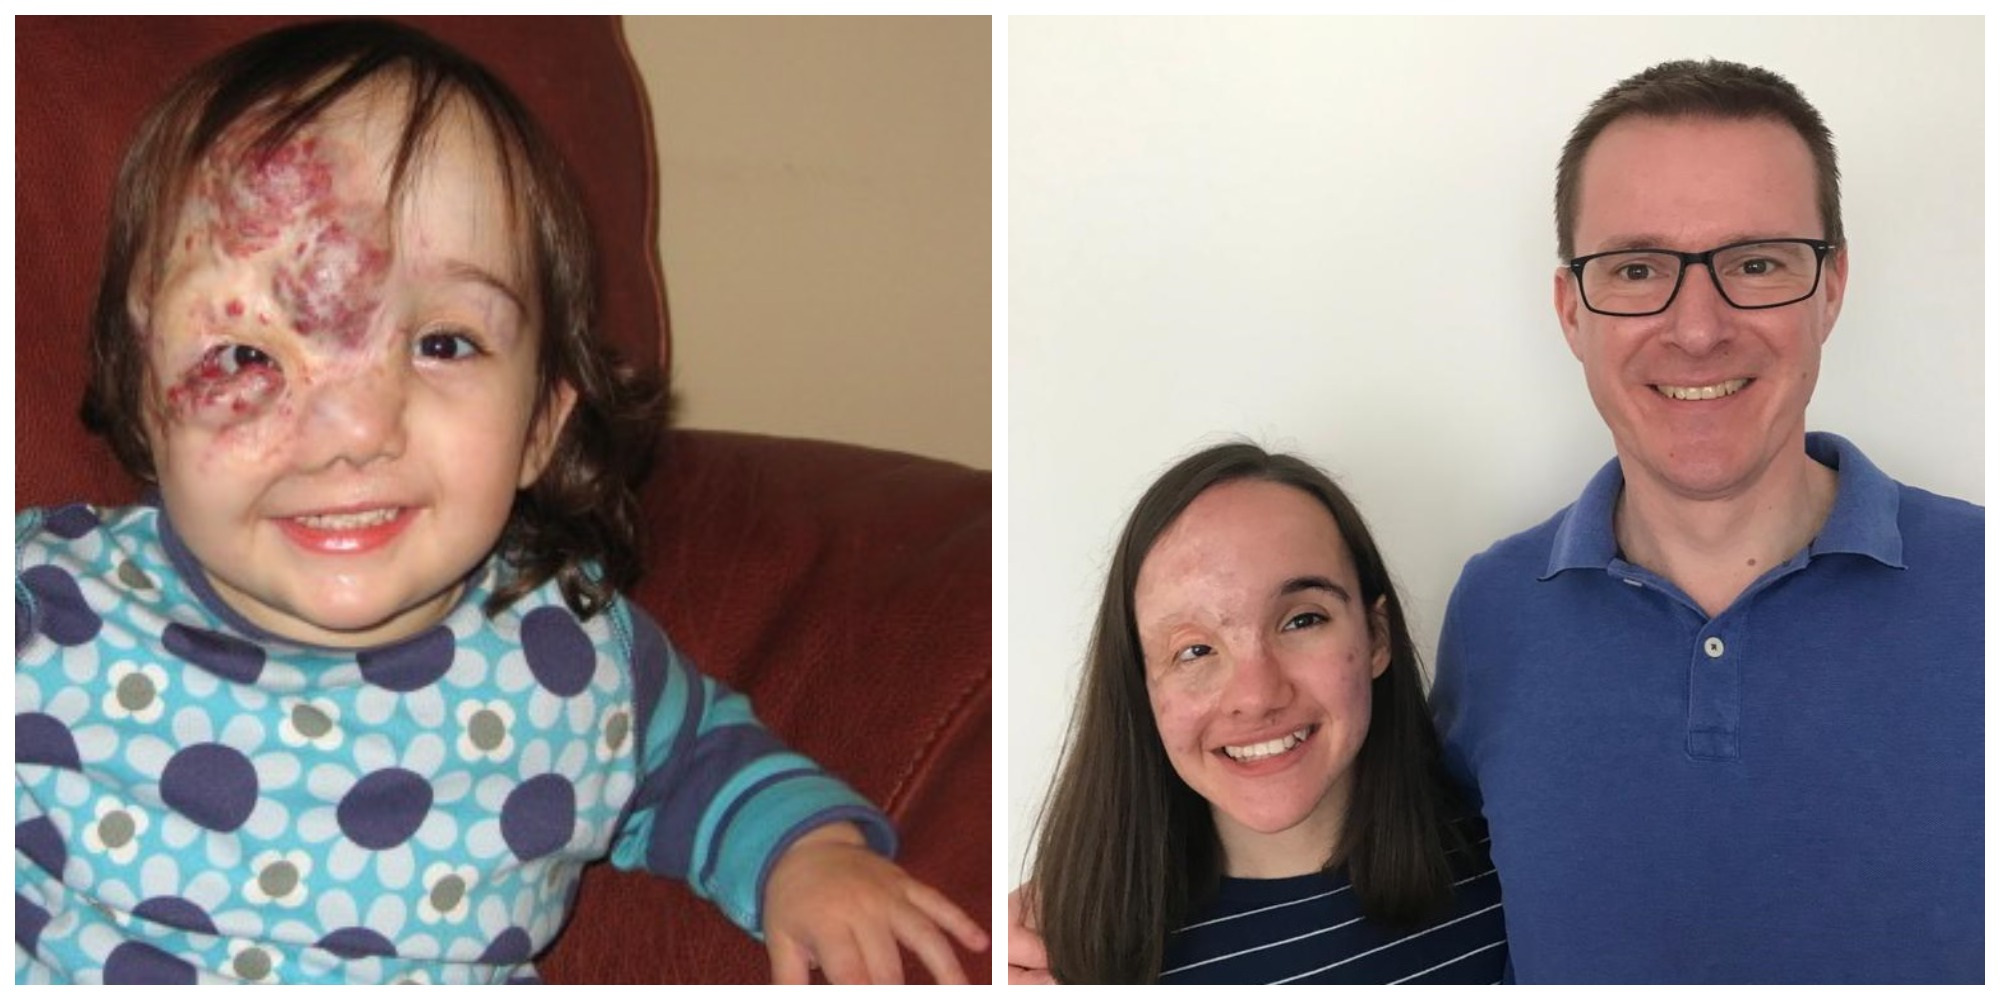 Two photos: on the left is a baby girl with a birthmark; on the right the girl is a smiling teenager, standing next to her dad, dressed in blue.